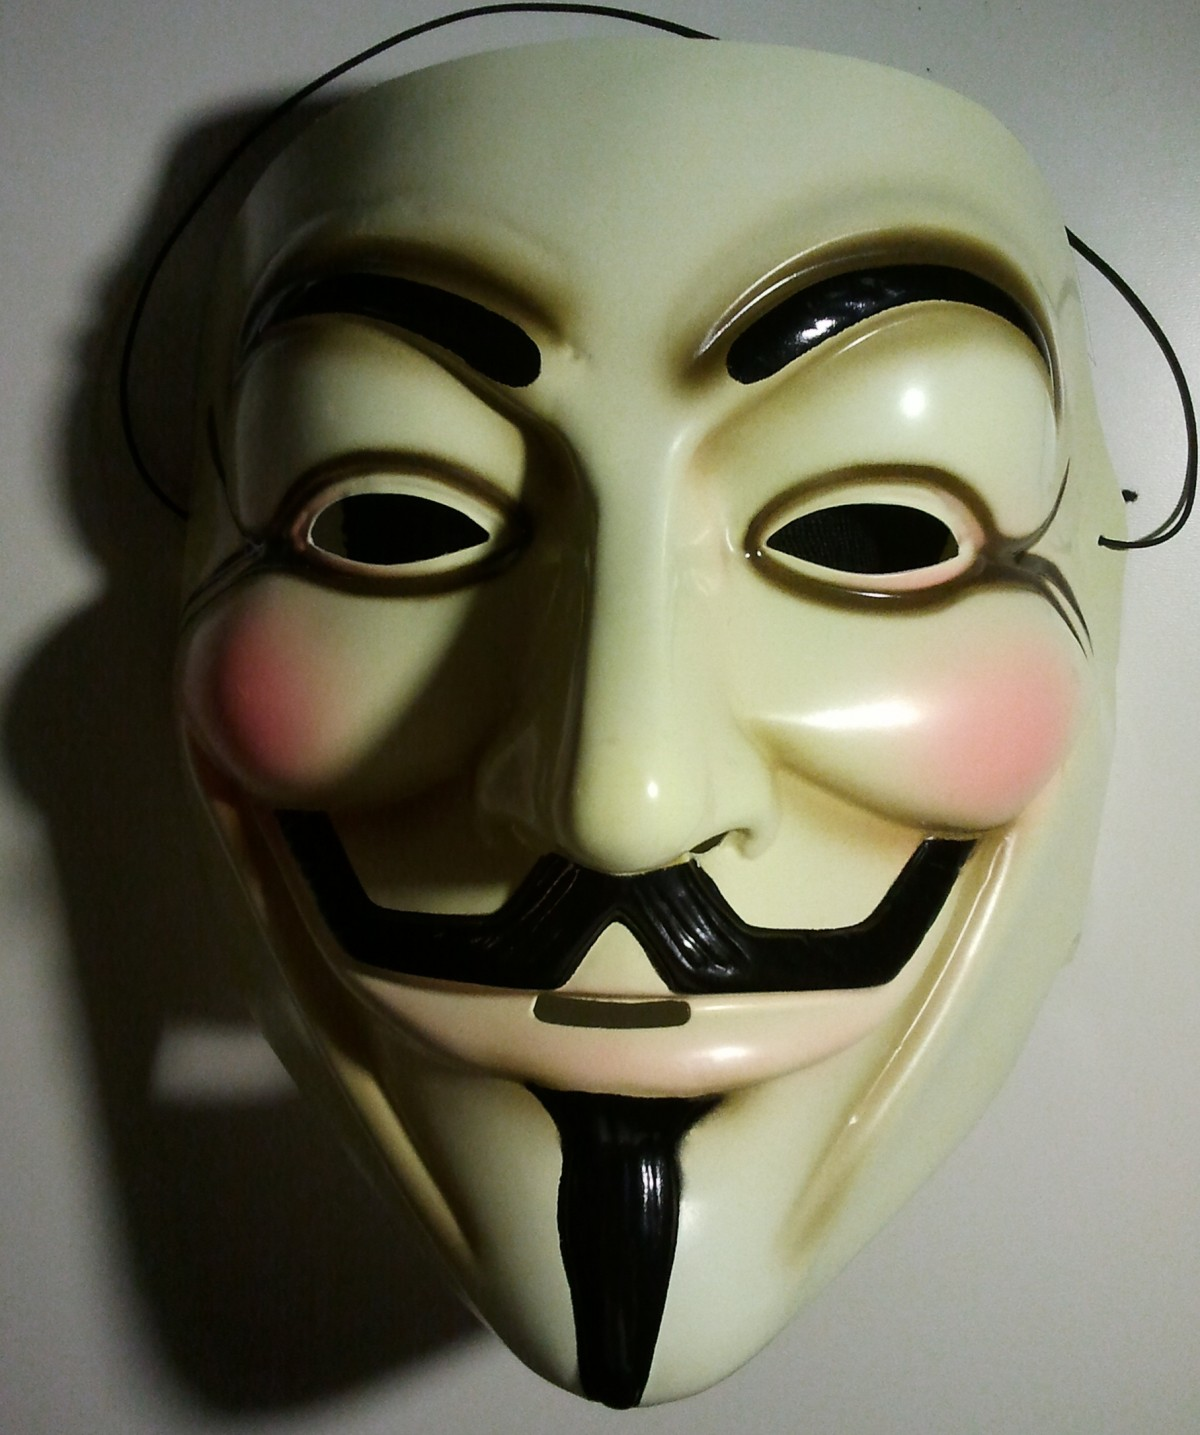 Student blog – Hacktivism: Justice or Anarchy?